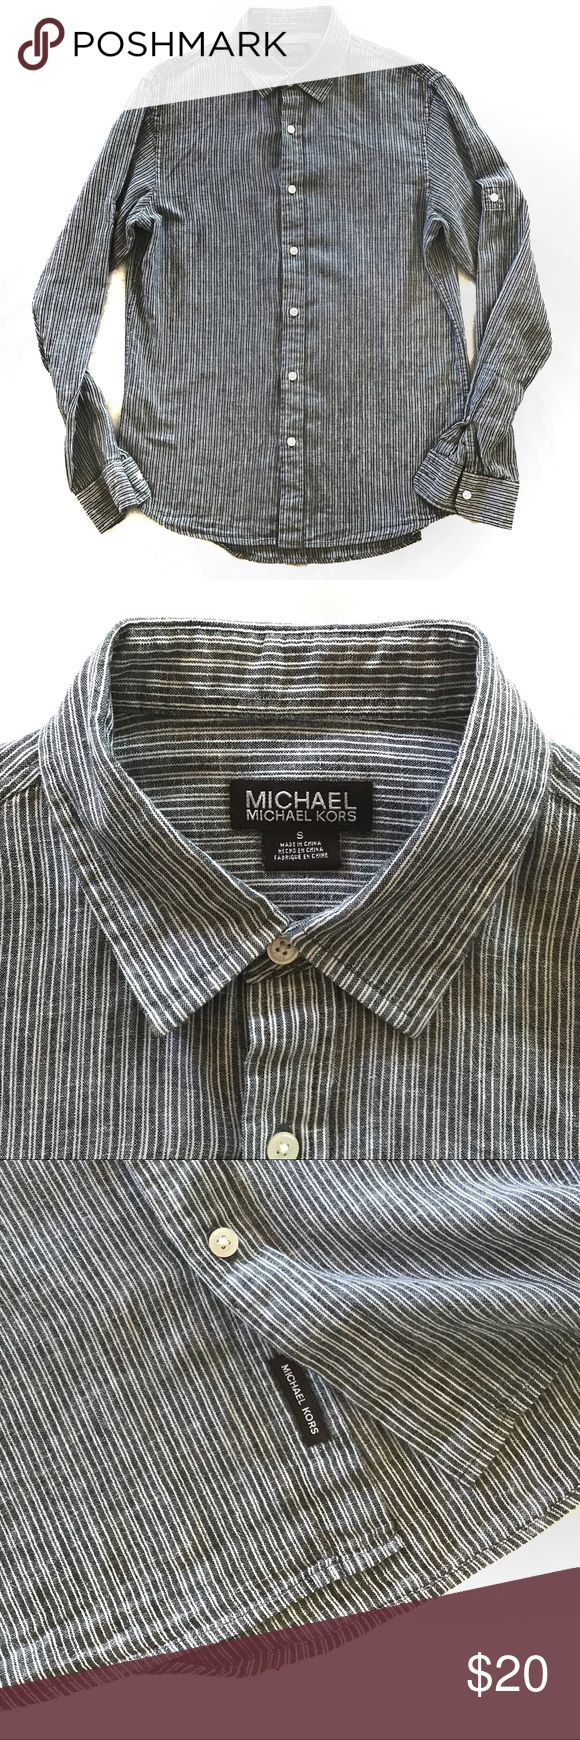 Michael Kors Gray Button Down Men's Shirt A gray striped Michael Kors button down shirt.  Gently used and in excellent condition with no signs of wear. Michael Kors Shirts Casual Button Down Shirts